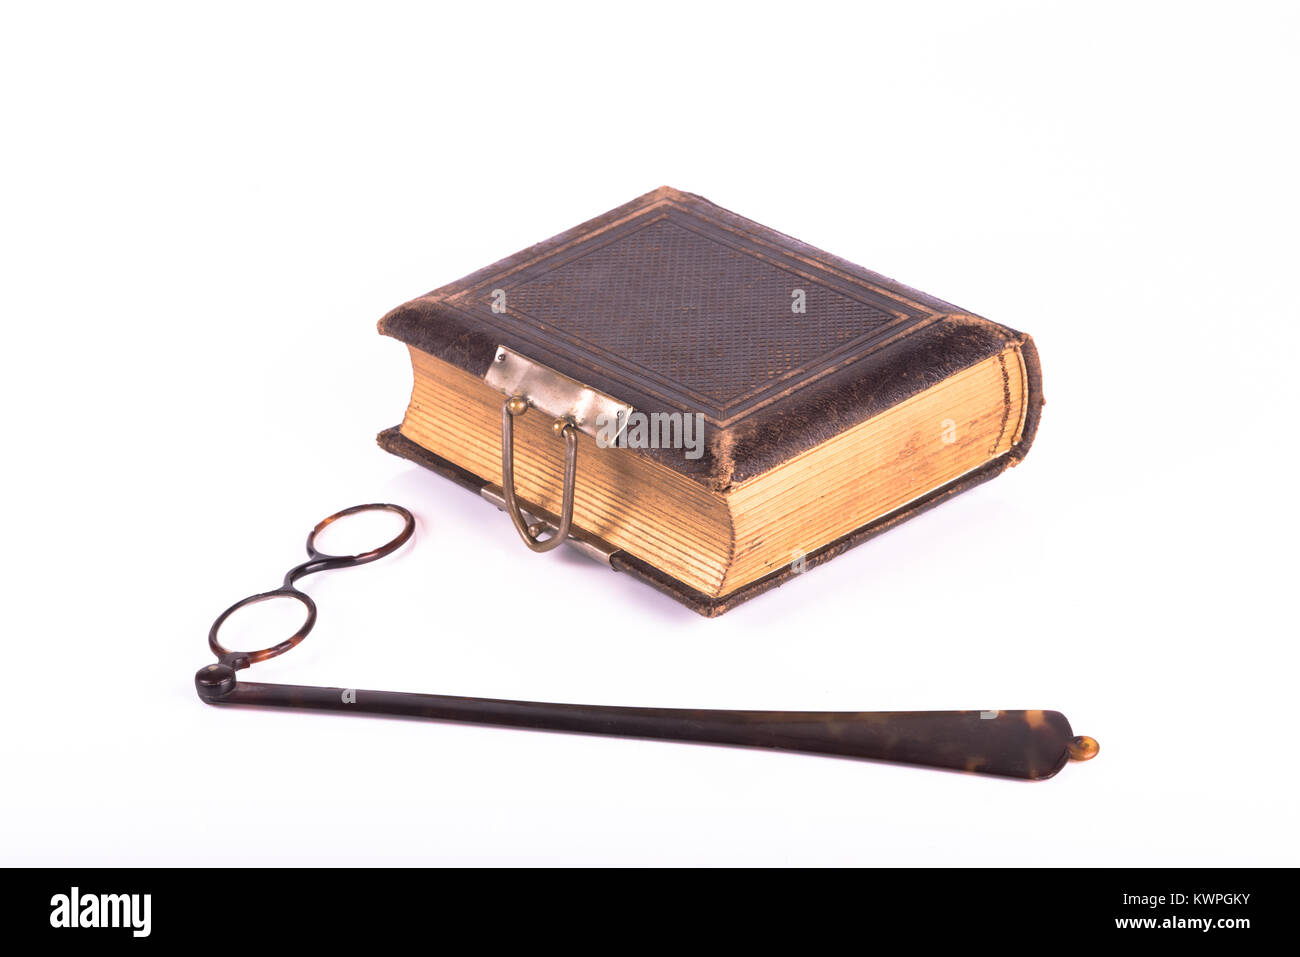 antique eye glasses and book ove a white background - Stock Image